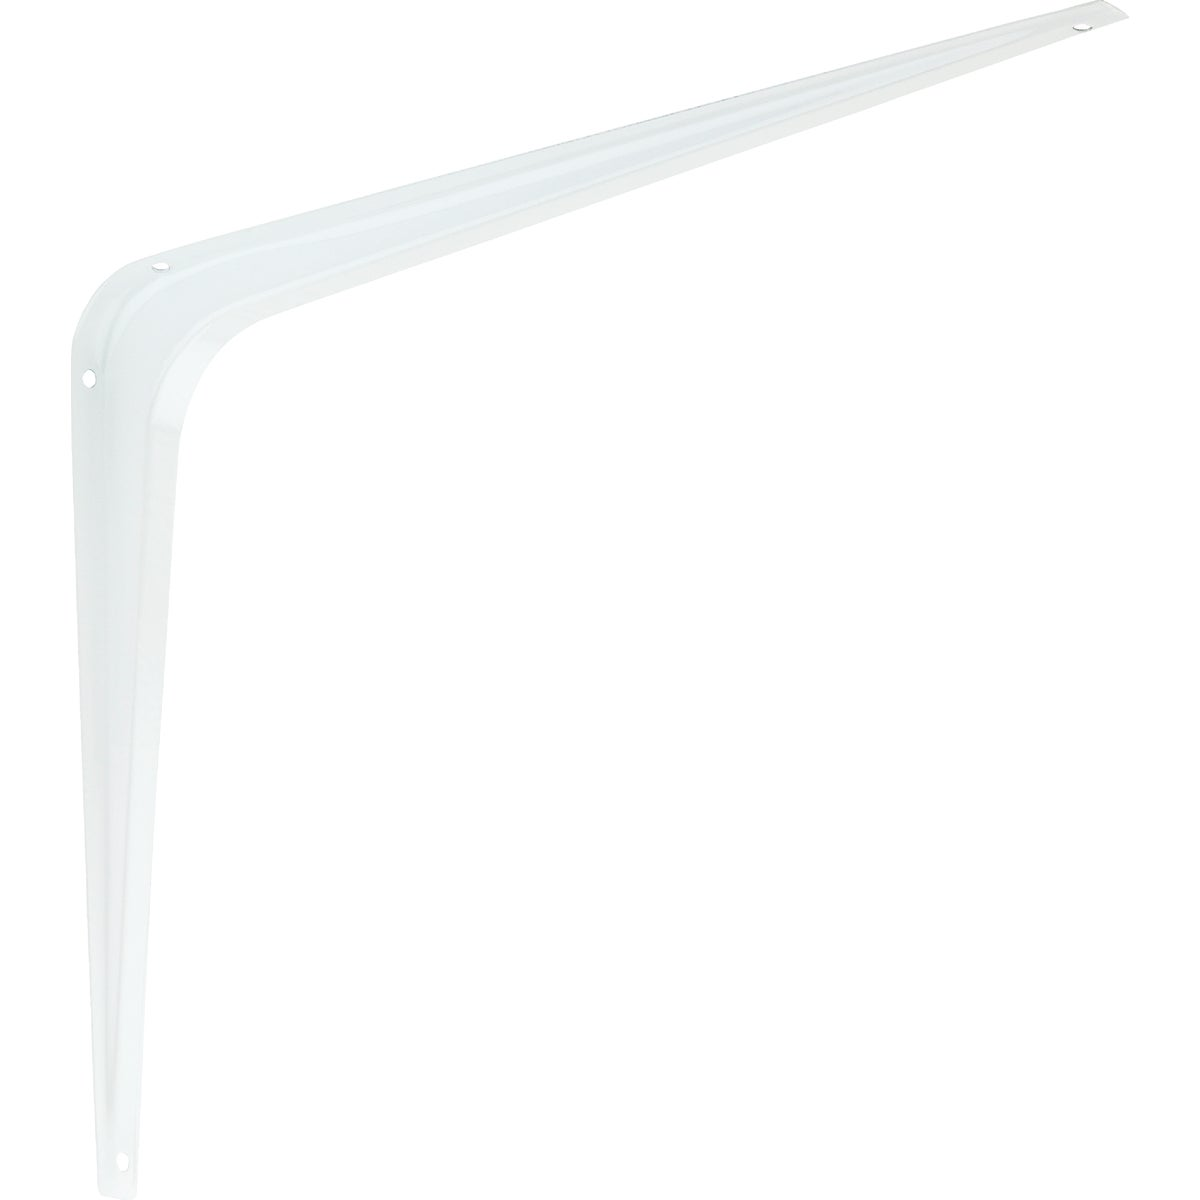 10X12 WHT SHELF BRACKET